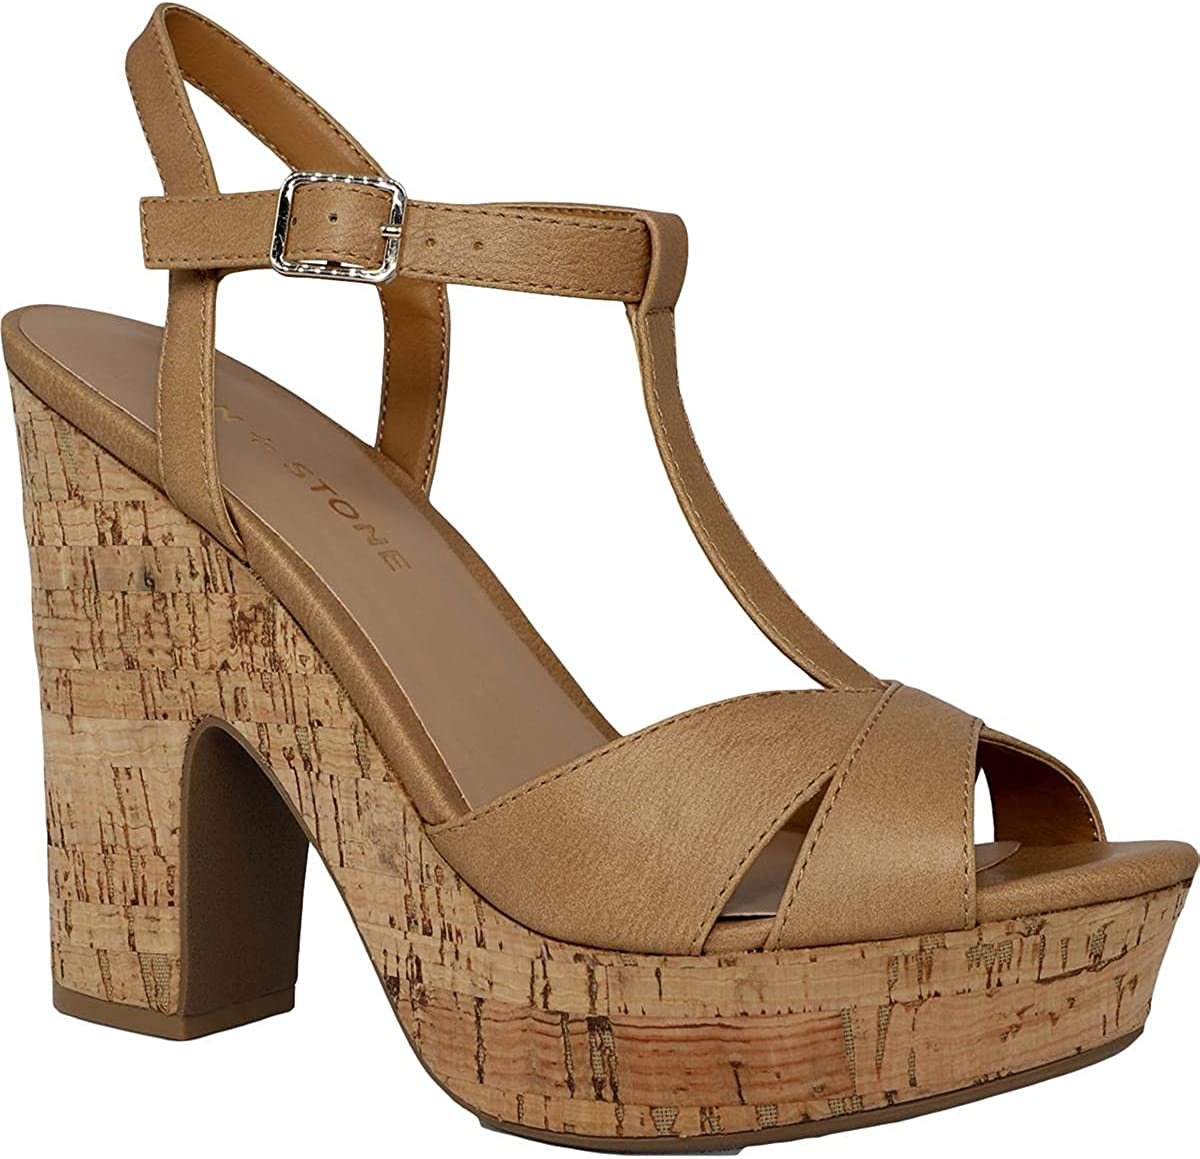 Sun + Stone San Diego Mall Womens Jamie Sandals Special price for a limited time Strap Ankle Woven Platform